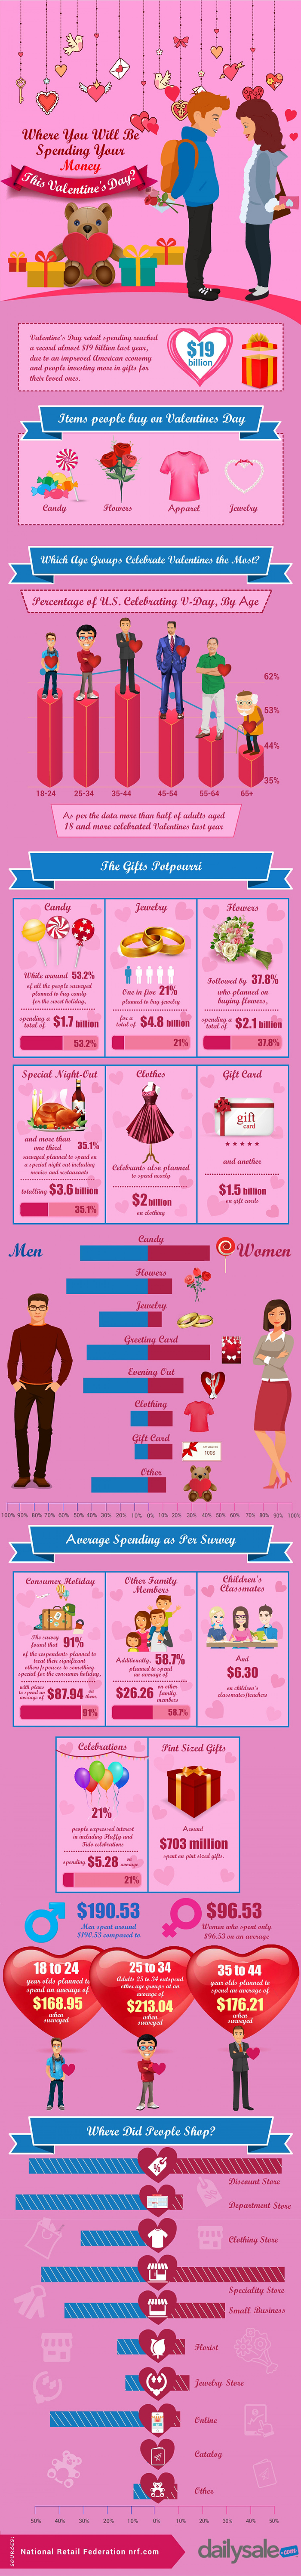 Where Will You Be Spending Your Money This Valentine's Day? Infographic